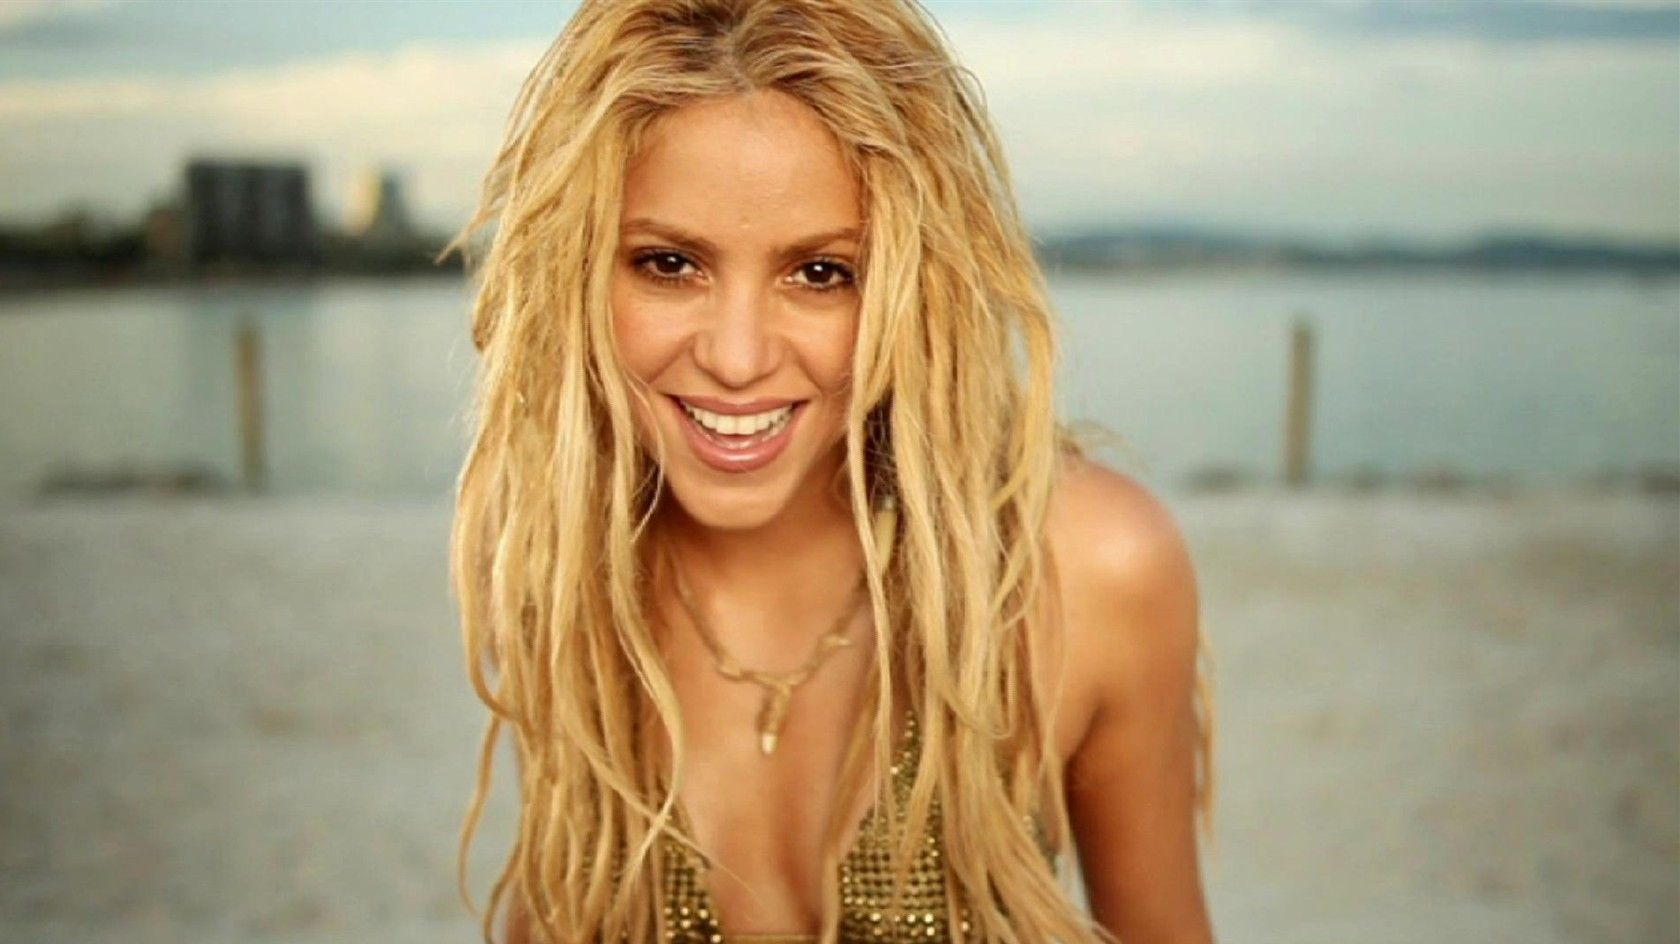 shakira mebarak (full name: shakira isabel mebarak ripoll) was born